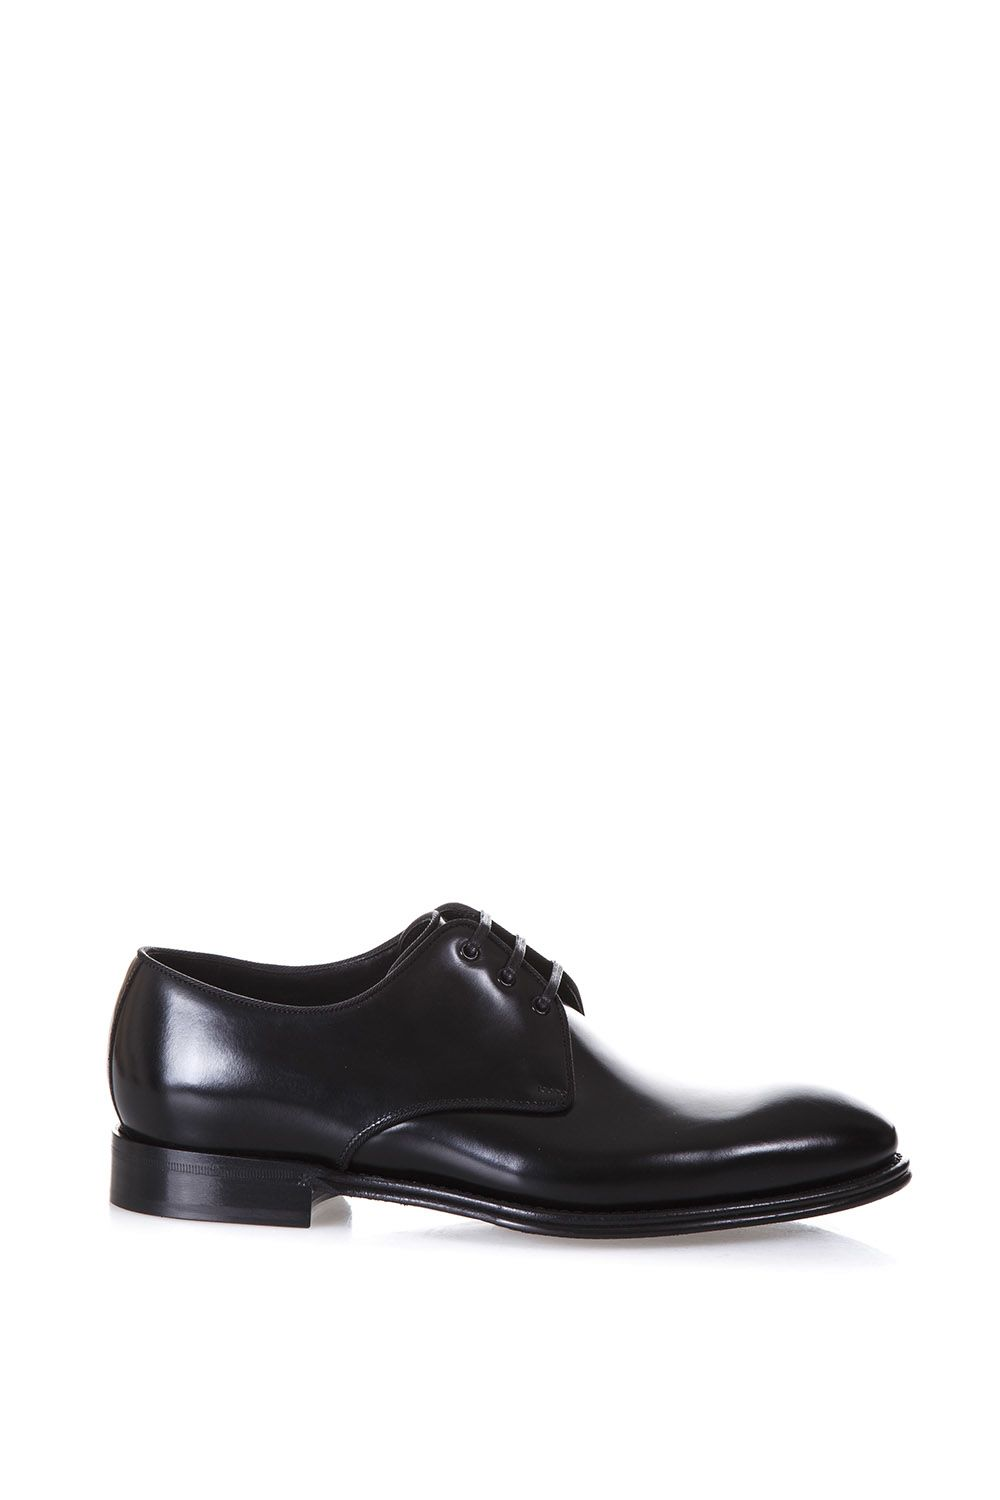 Dolce & Gabbana Brushed Leather Lace-up Shoes